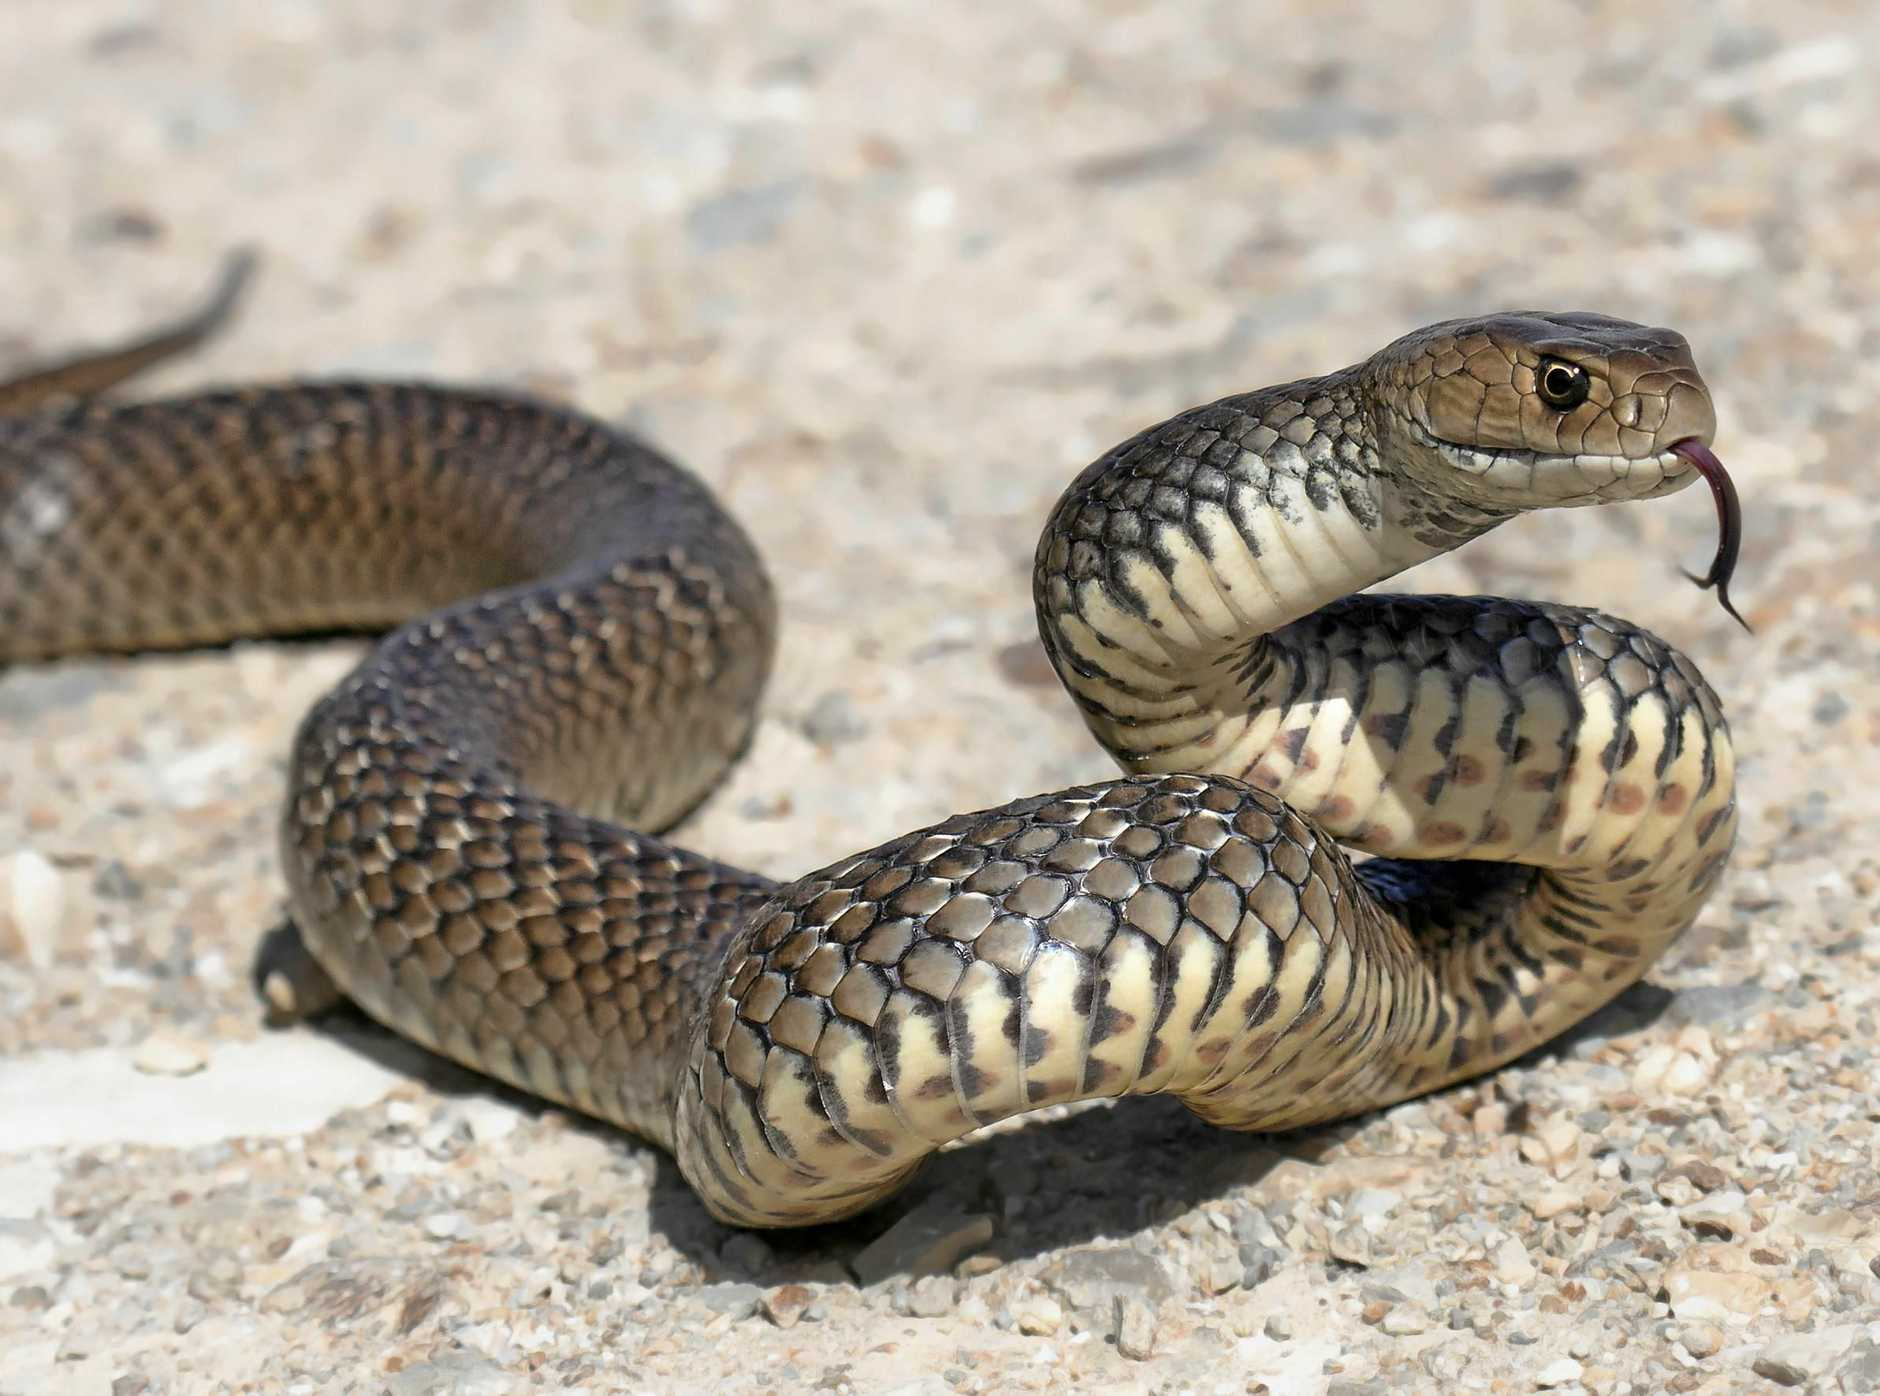 SURPRISE: Kirra Nate Rivers was bitten by what she suspects was a juvenile brown snake earlier this week.